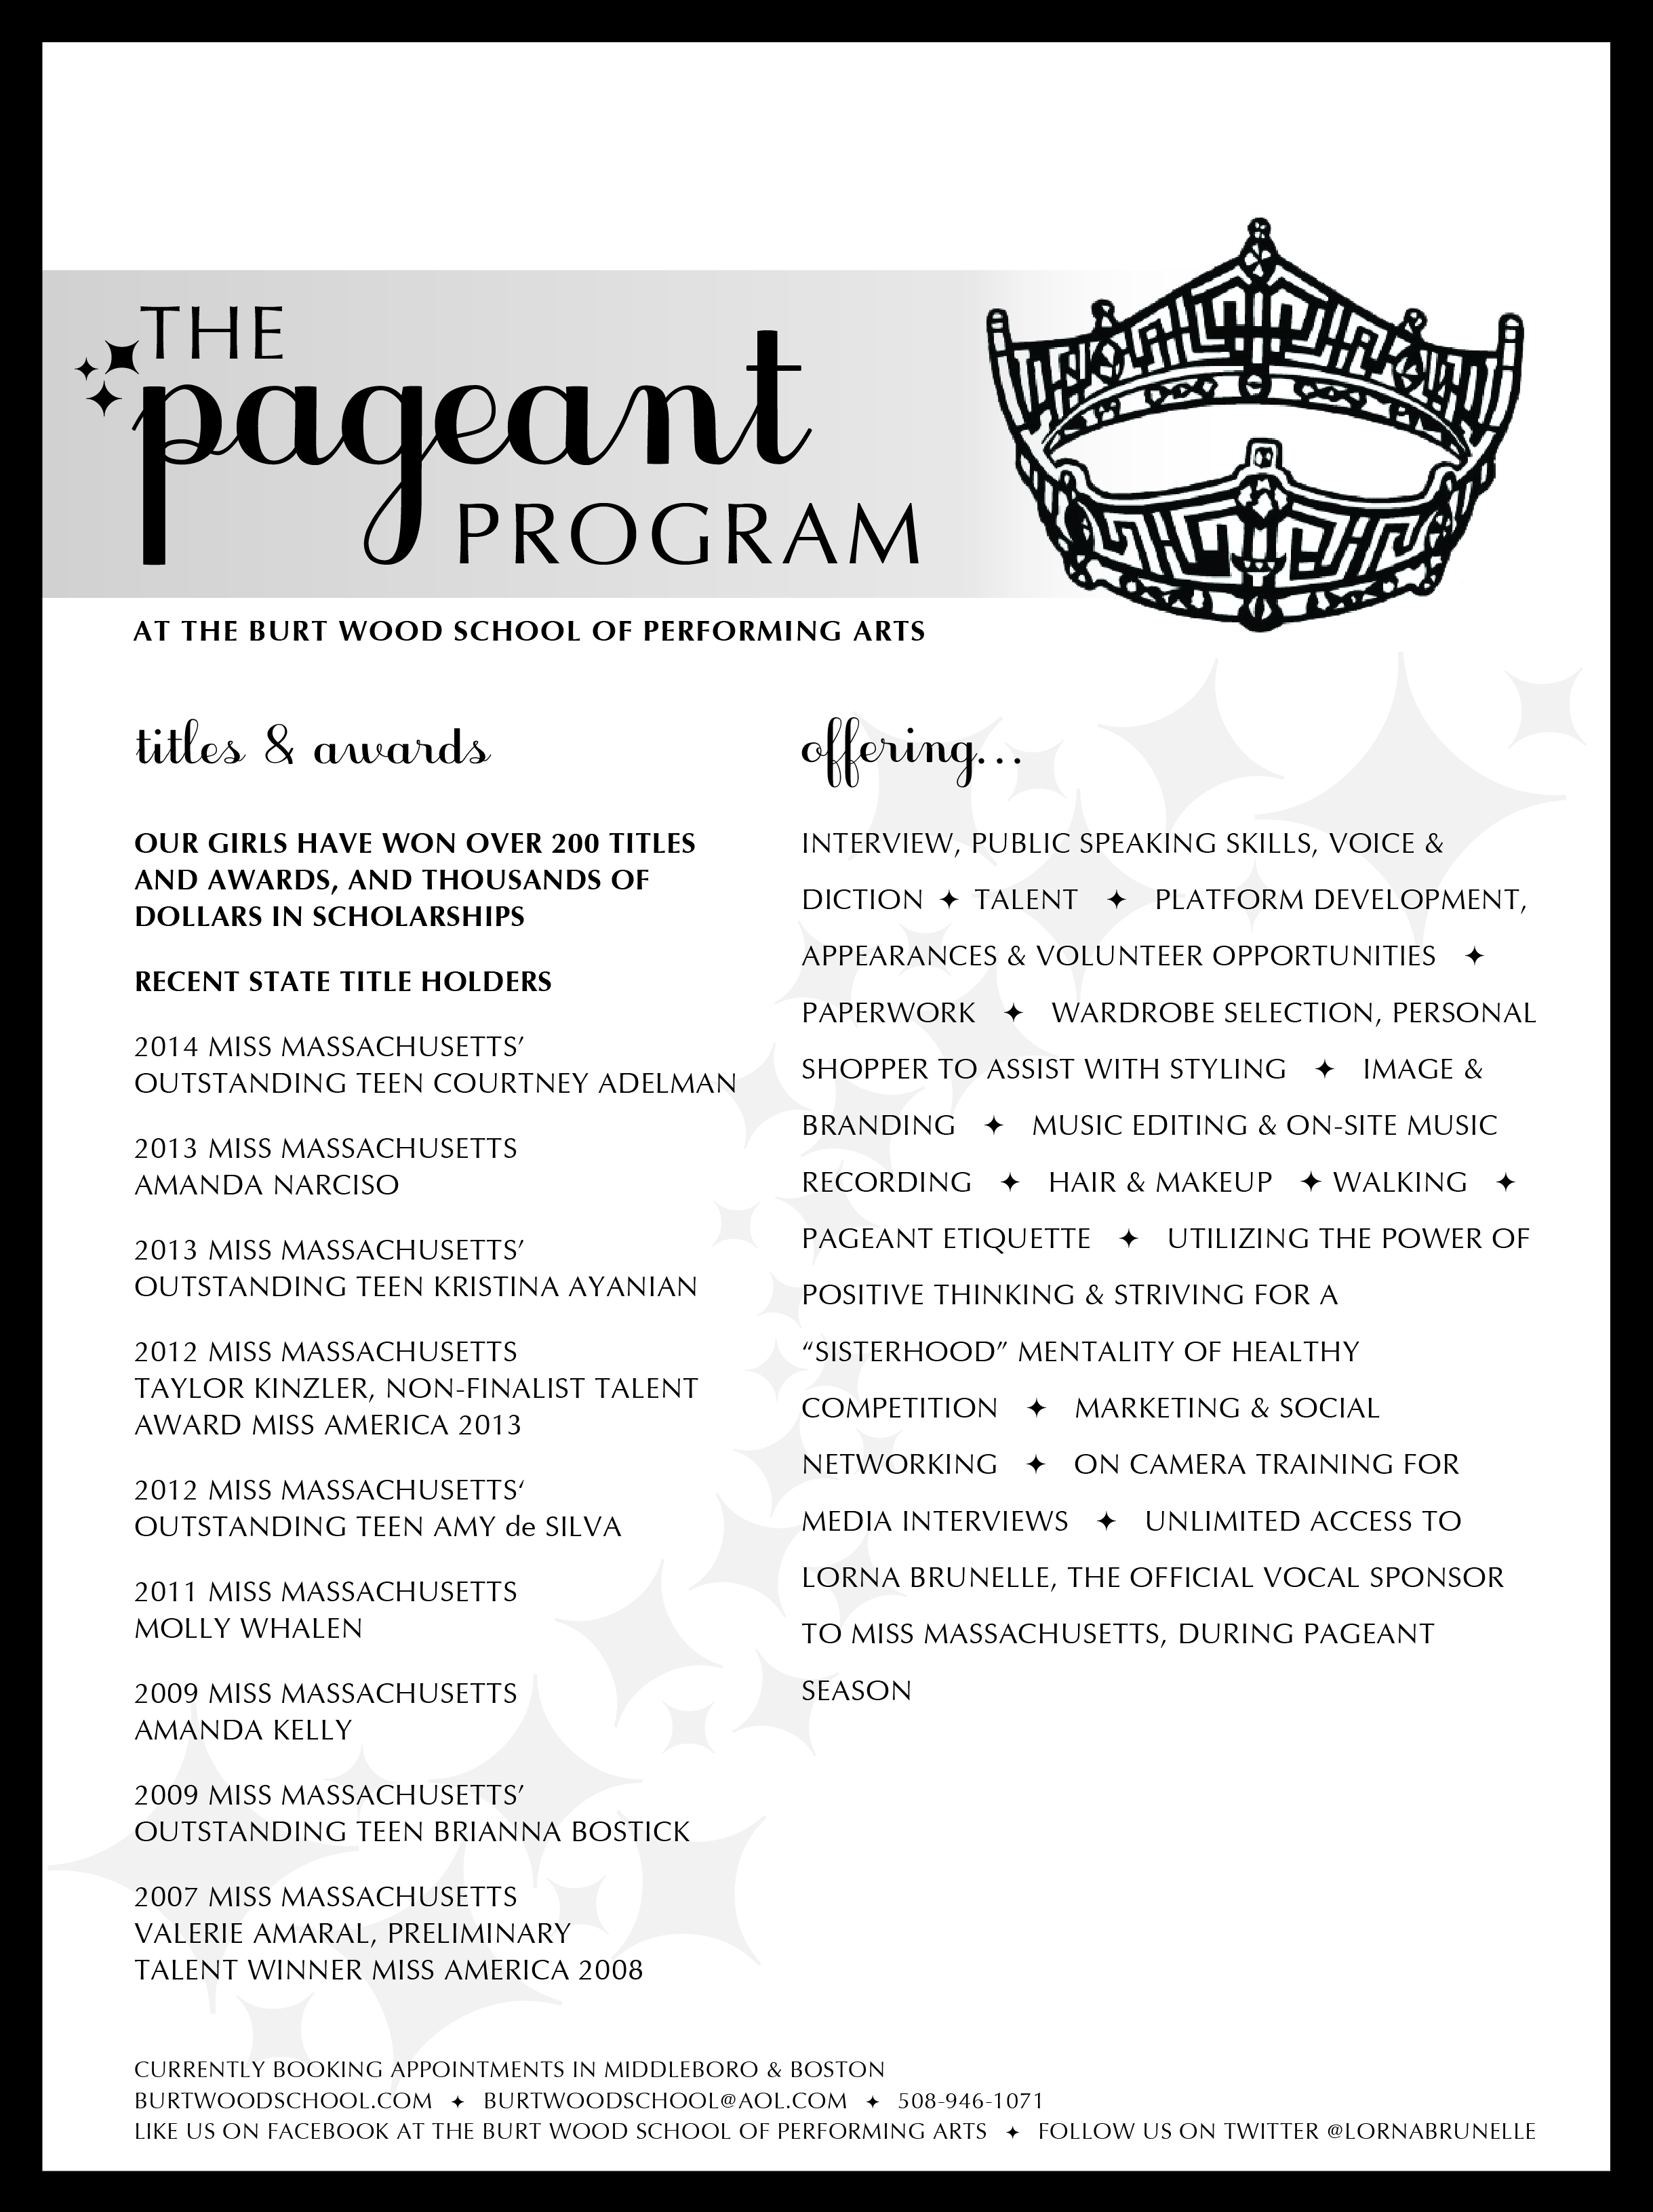 Pageant Program | The Burtwood School of Performing Arts